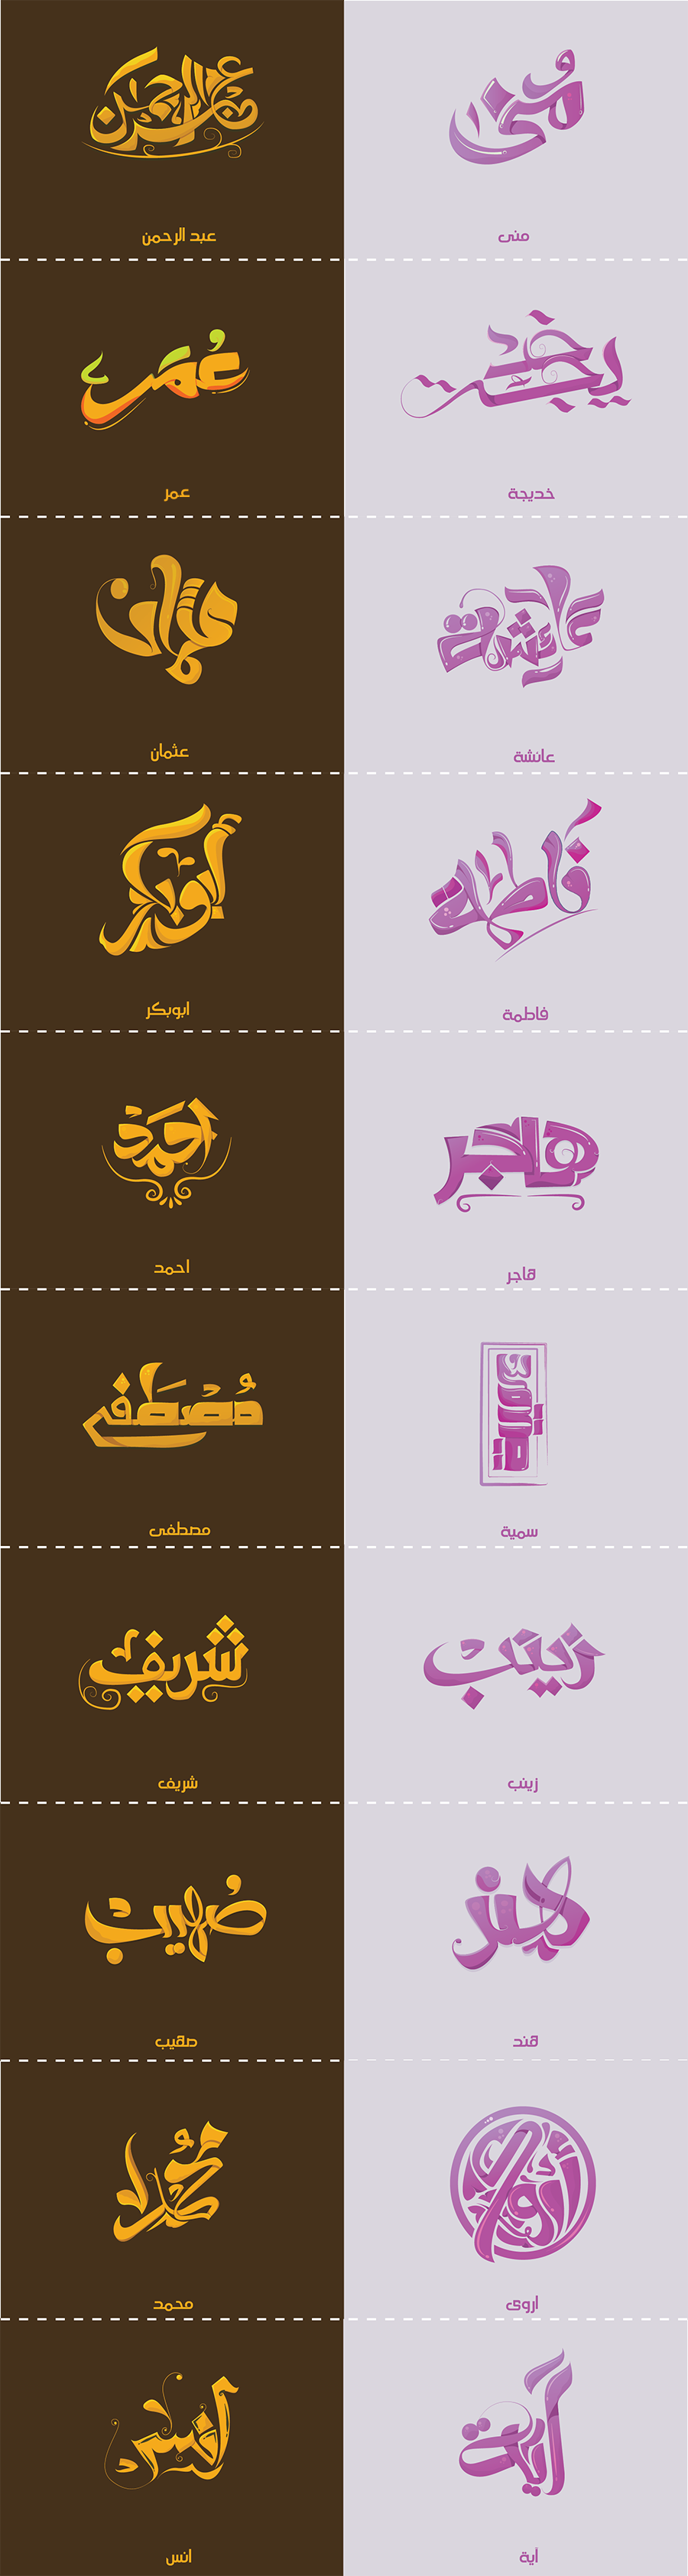 20 Arabic Typography Names on Behance | Design l Arabian